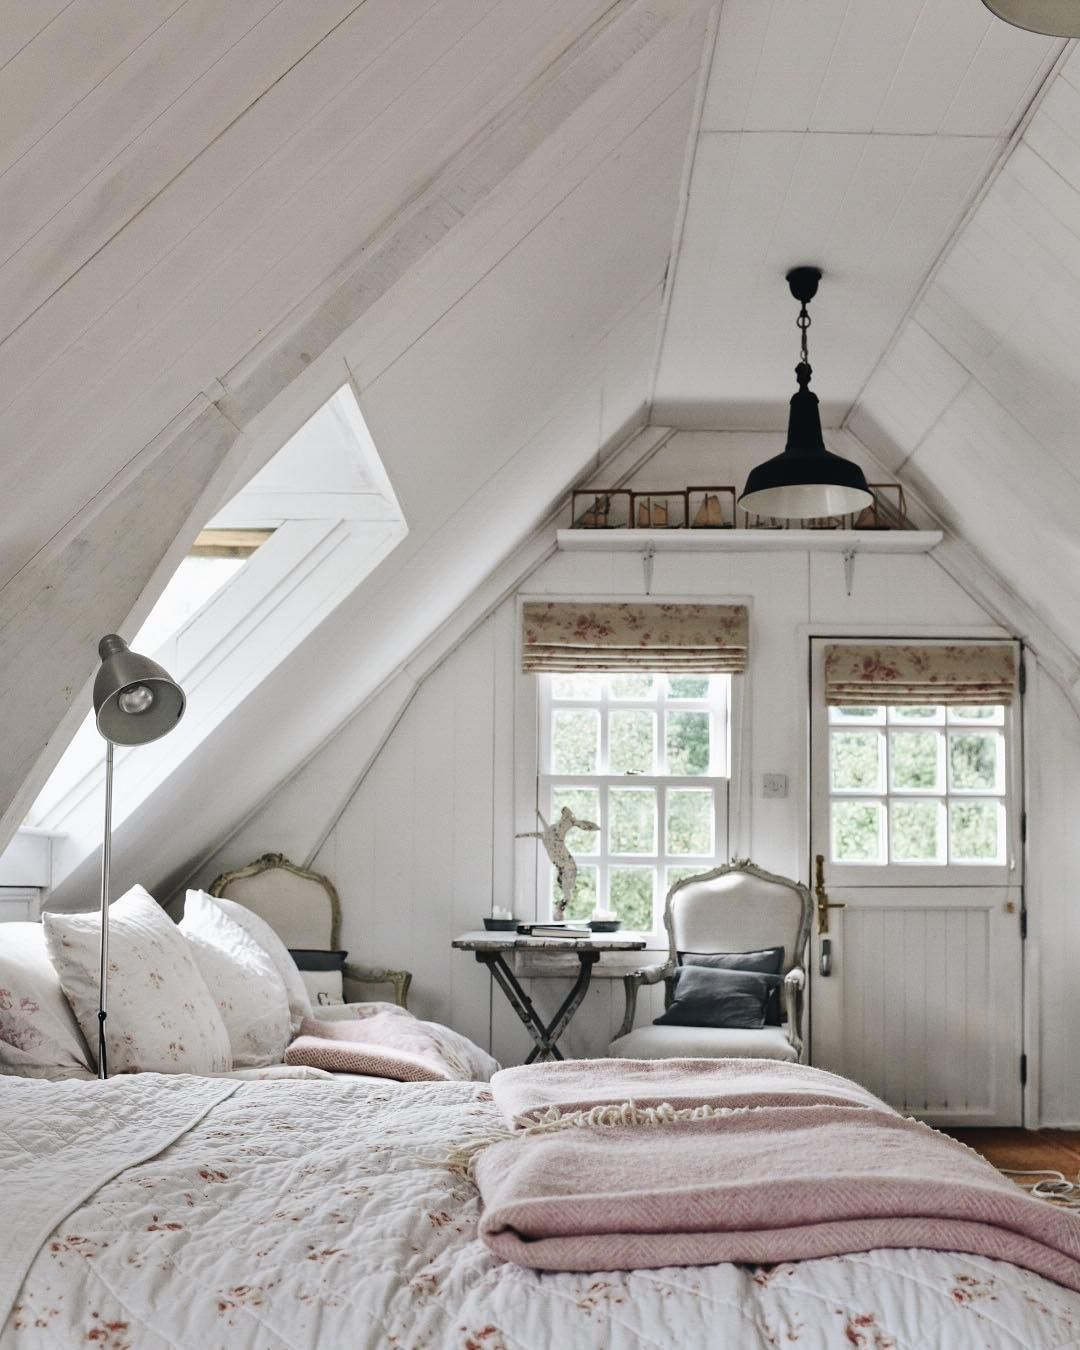 House Decorating Ideas Turning Your Space Into A Plush: 35+ Clever Use Of Attic Room Design And Remodel Ideas